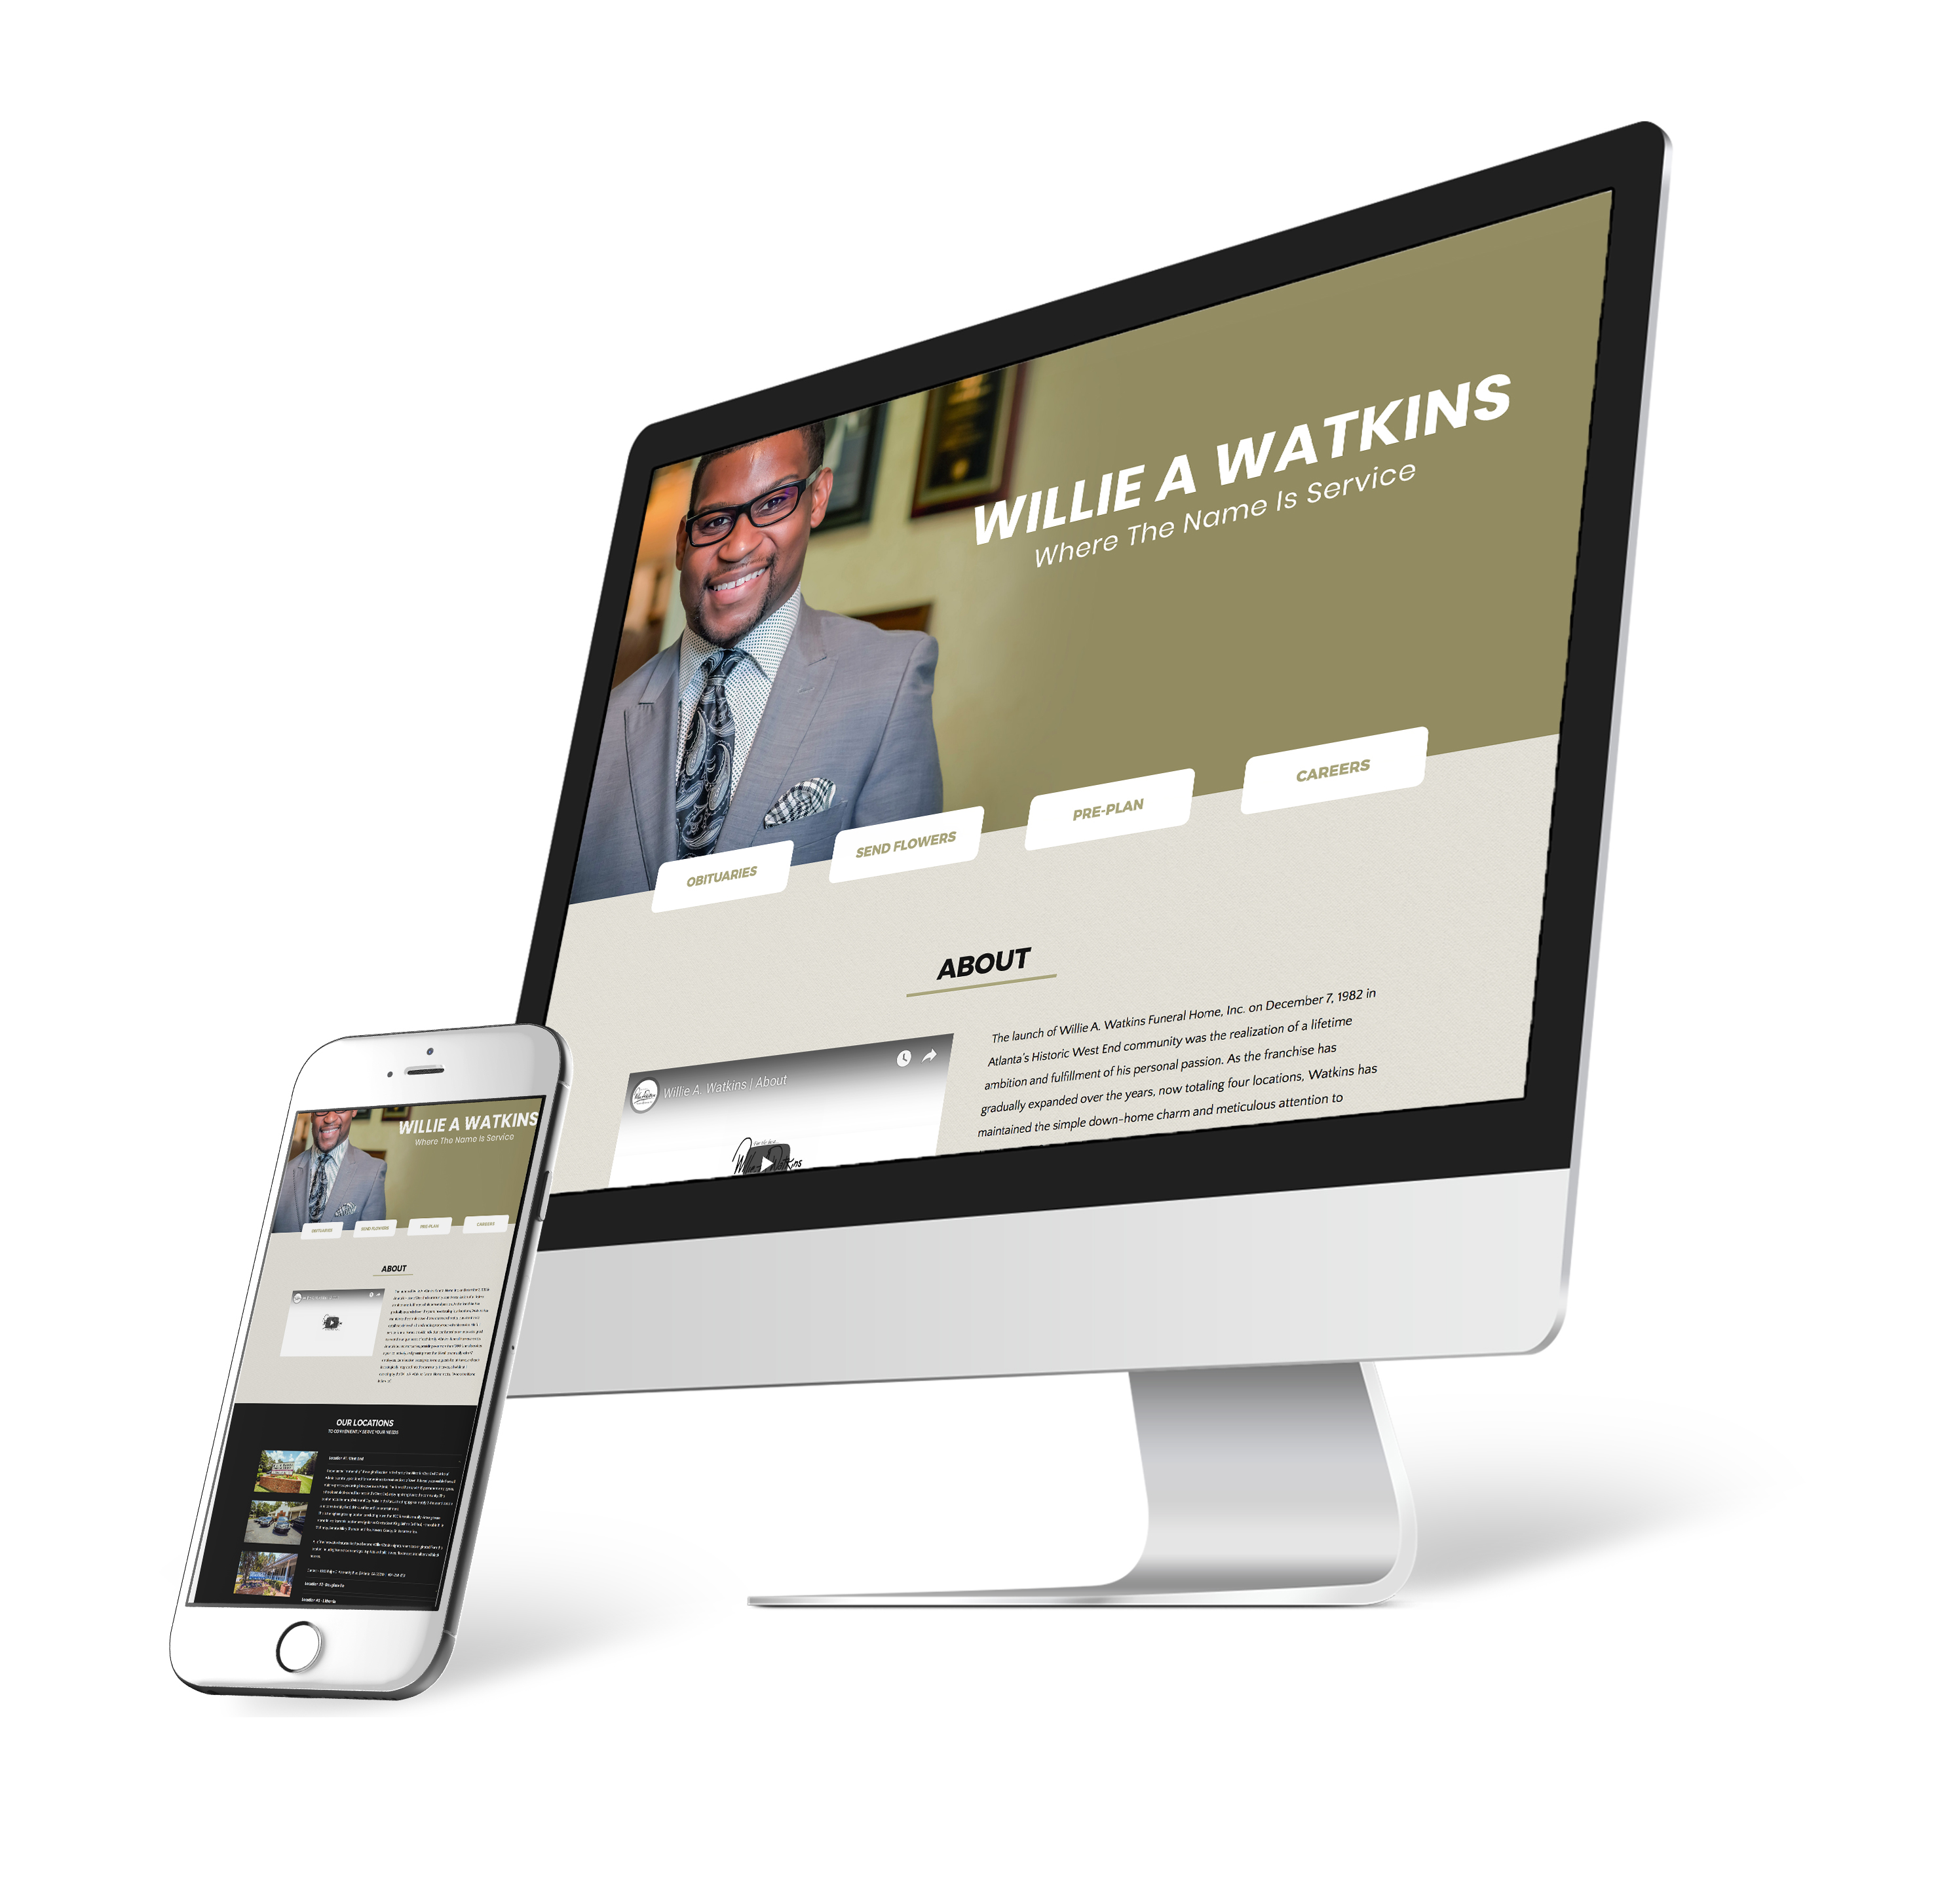 Willie A Watkins funeral home website design